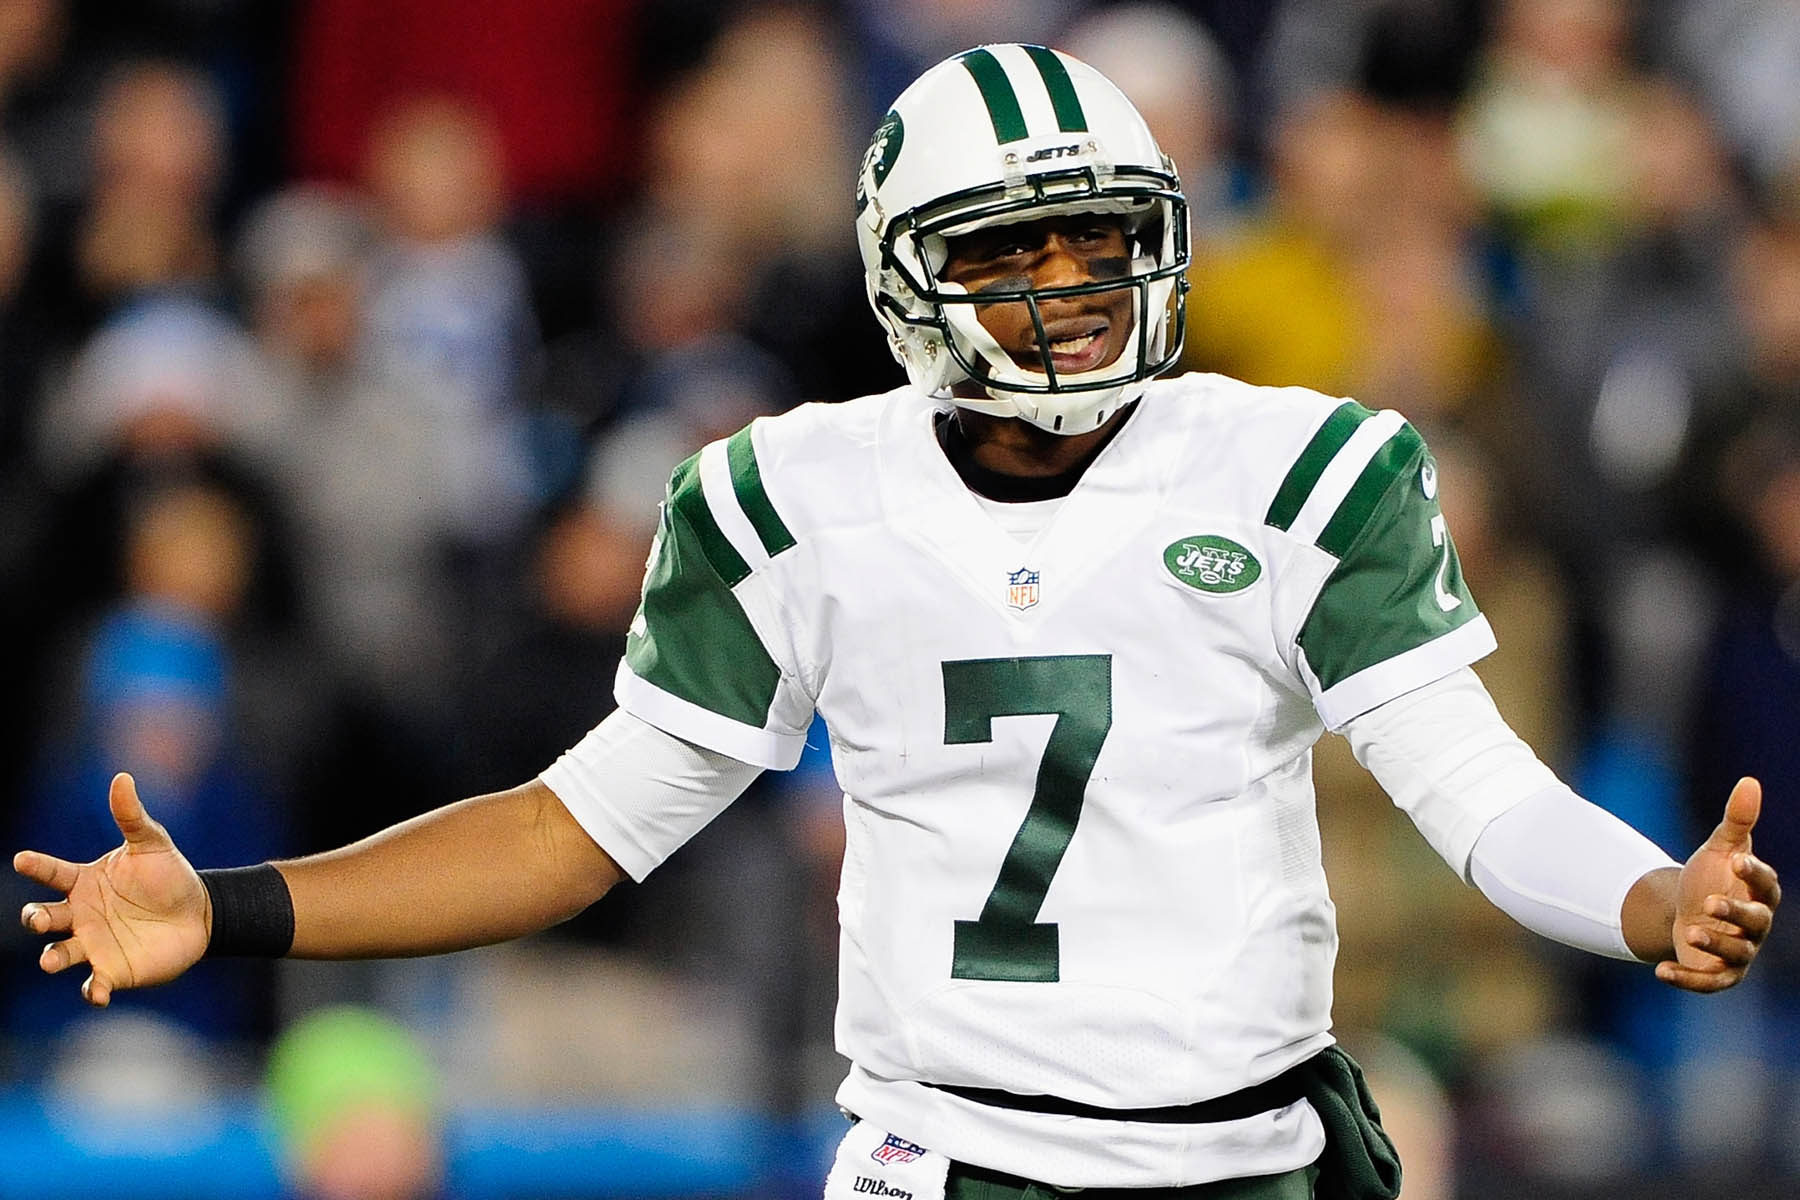 With any luck, Geno Smith will be making this face a lot on Sunday.